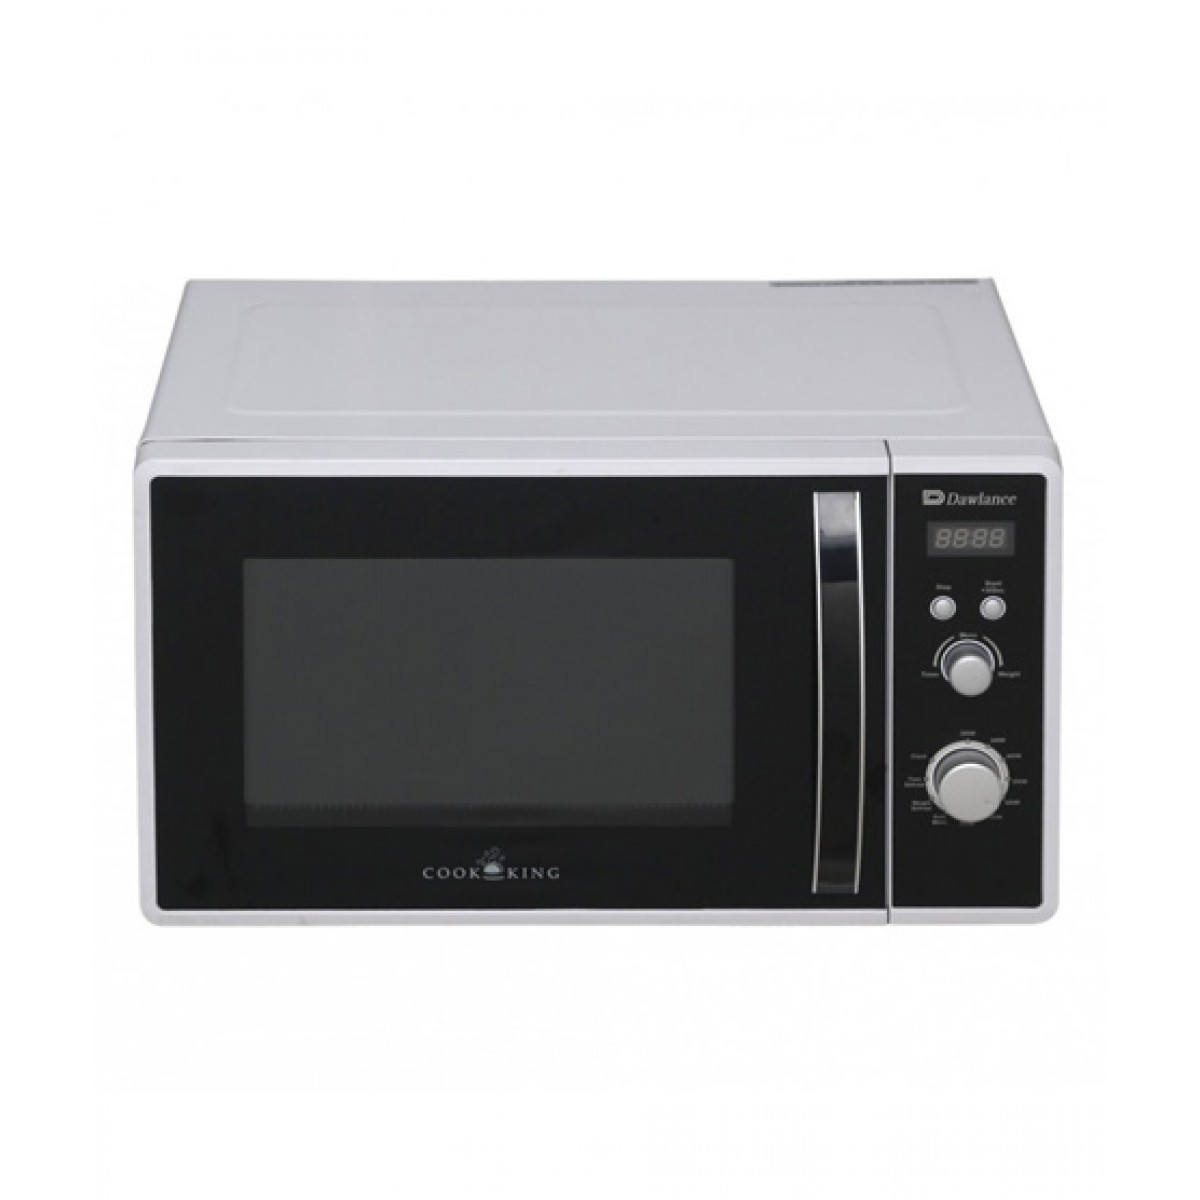 Dawlance Microwave Oven 23 Ltr